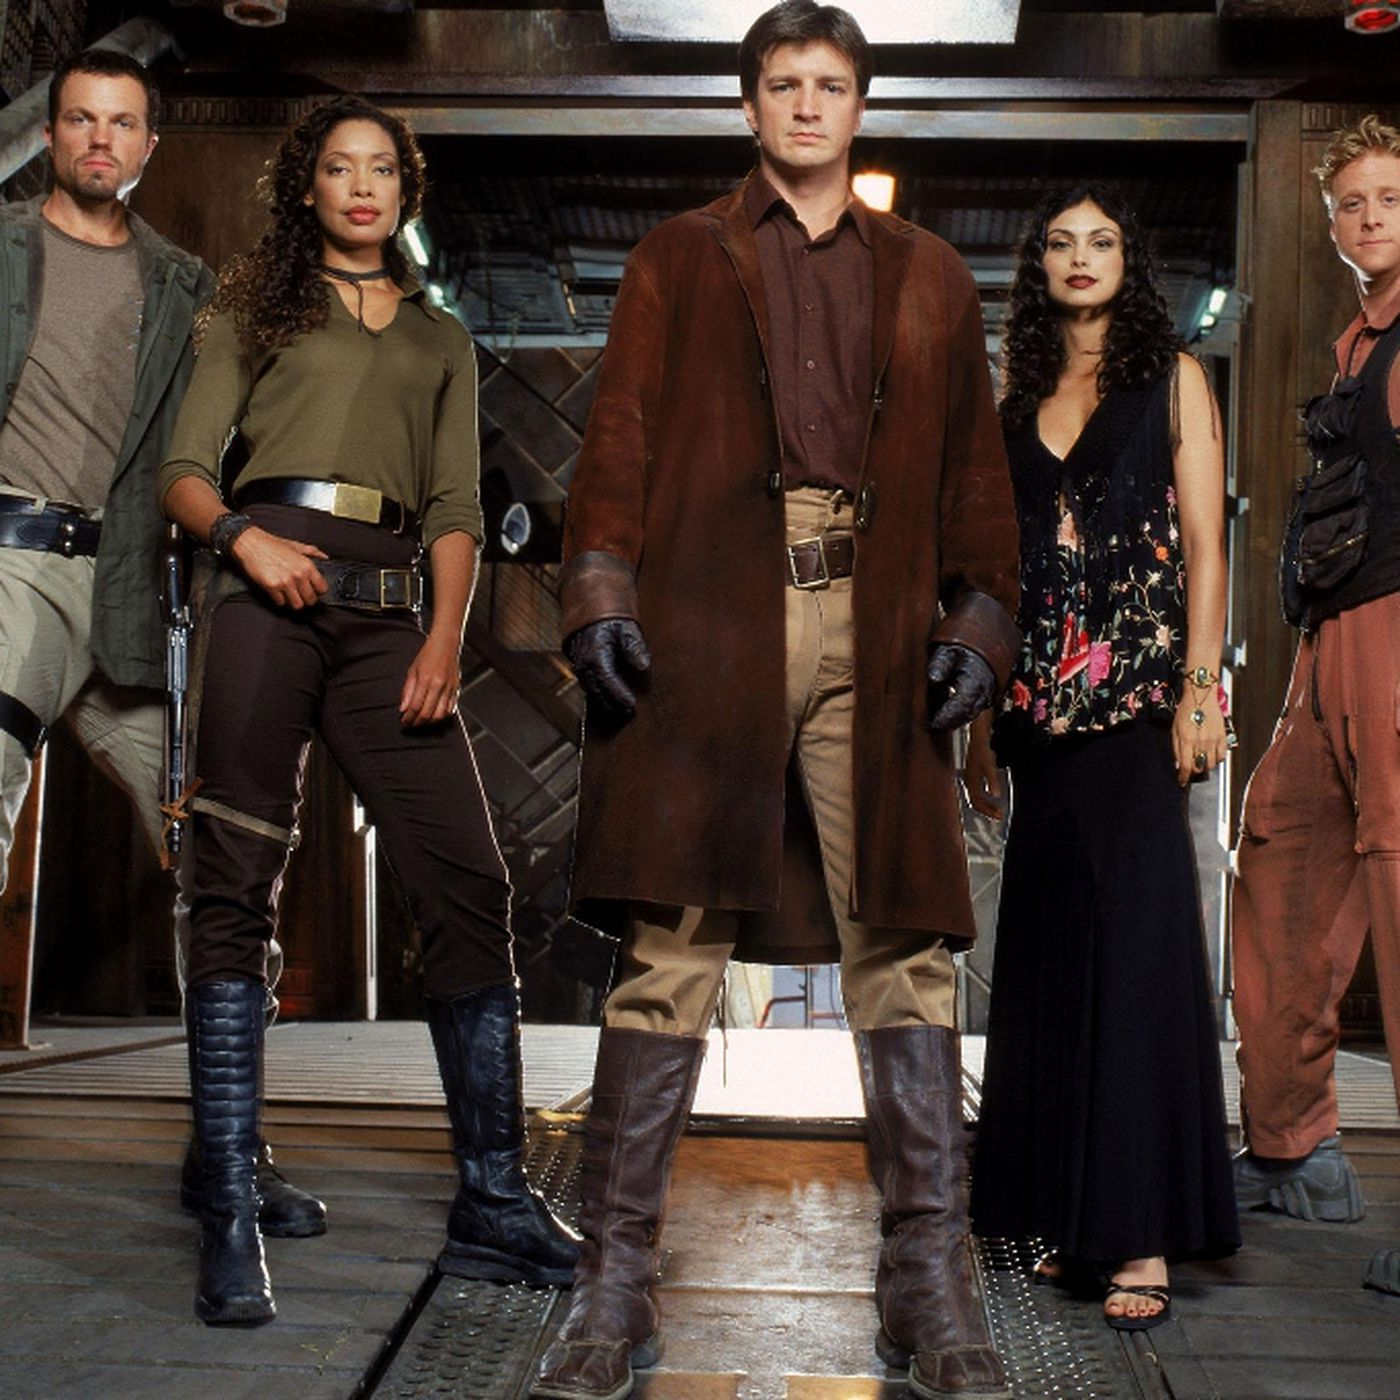 100 Photos of Firefly Season 1 Episode 14